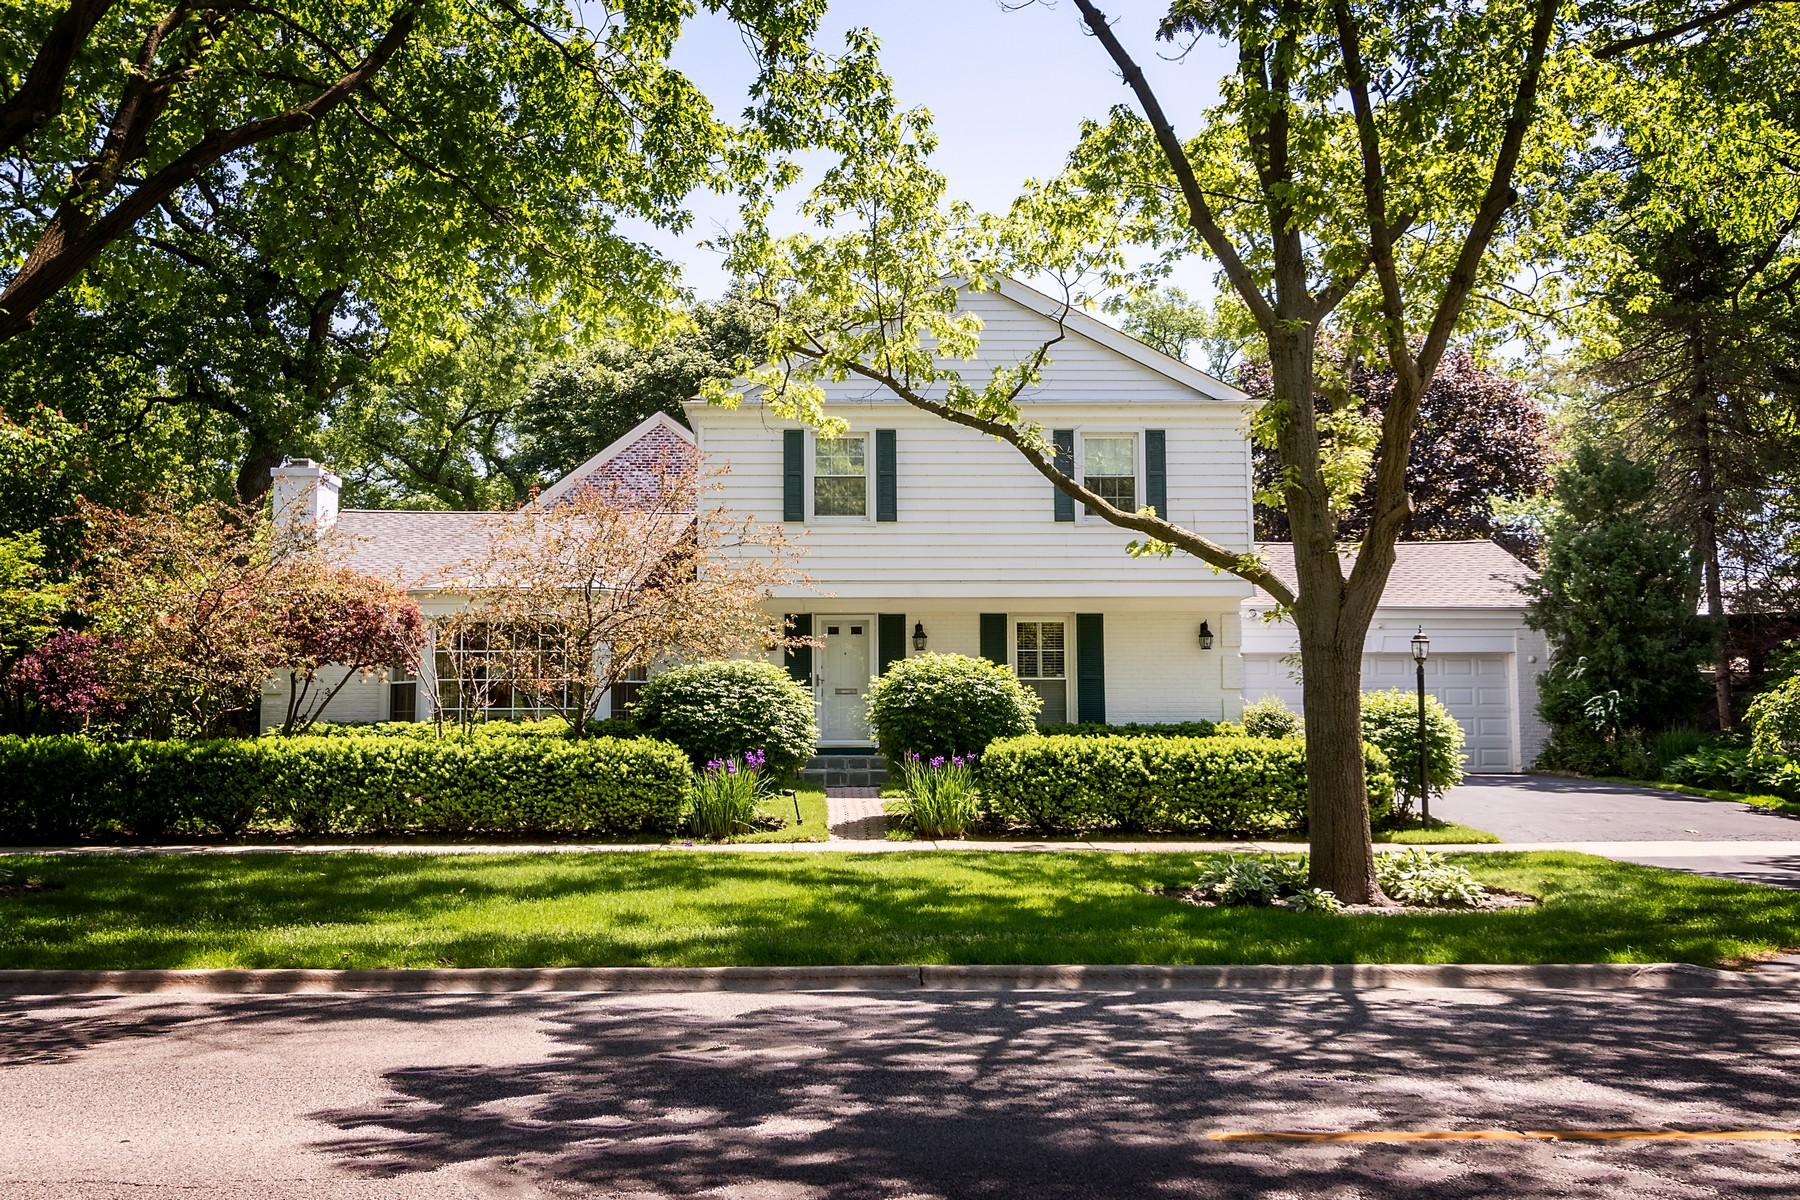 Single Family Home for Sale at Beautiful Colonial 242 Greenwood Street Evanston, Illinois 60201 United States